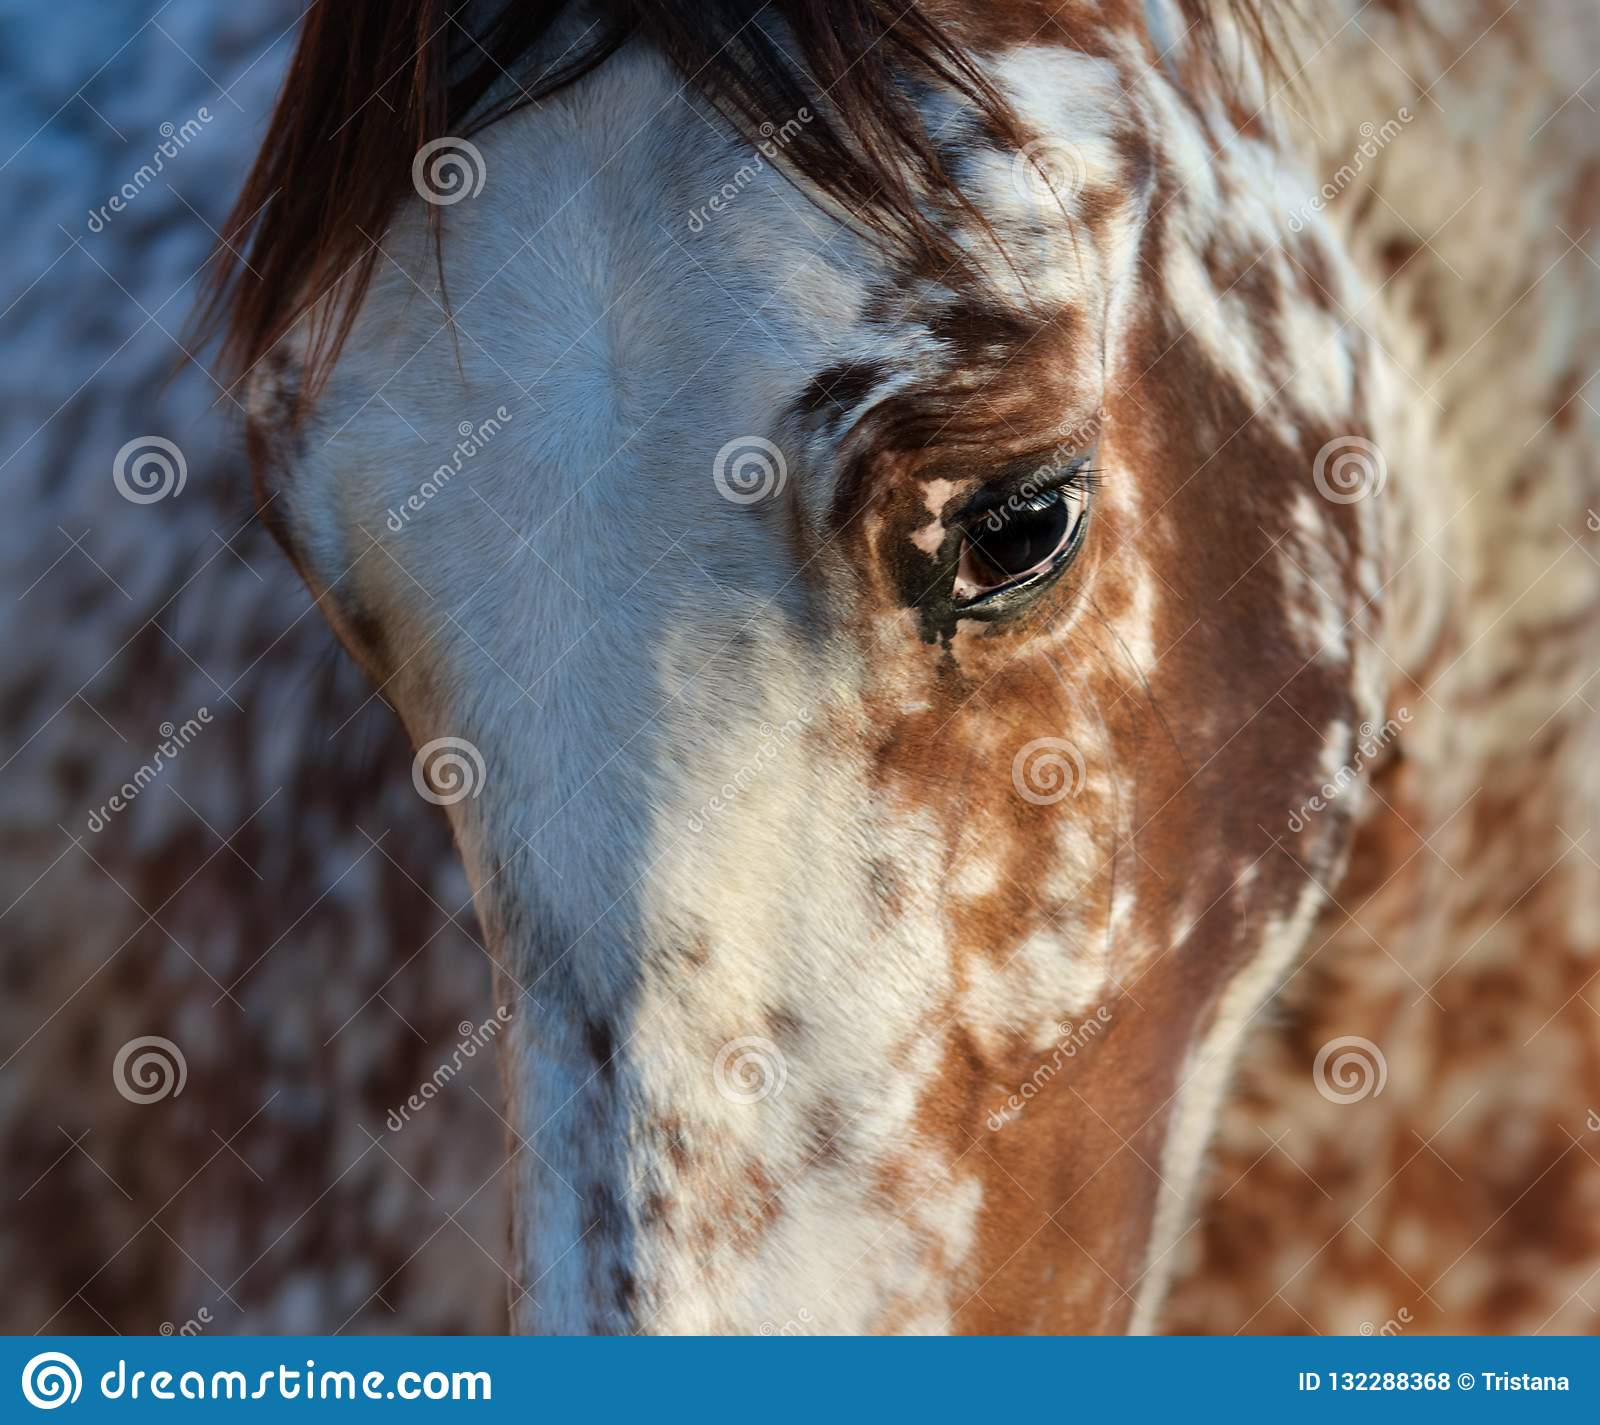 Portrait Of Rare Mixed Breed Of Spanish And Appaloosa Horse Stock Photo Image Of Head Breed 132288368